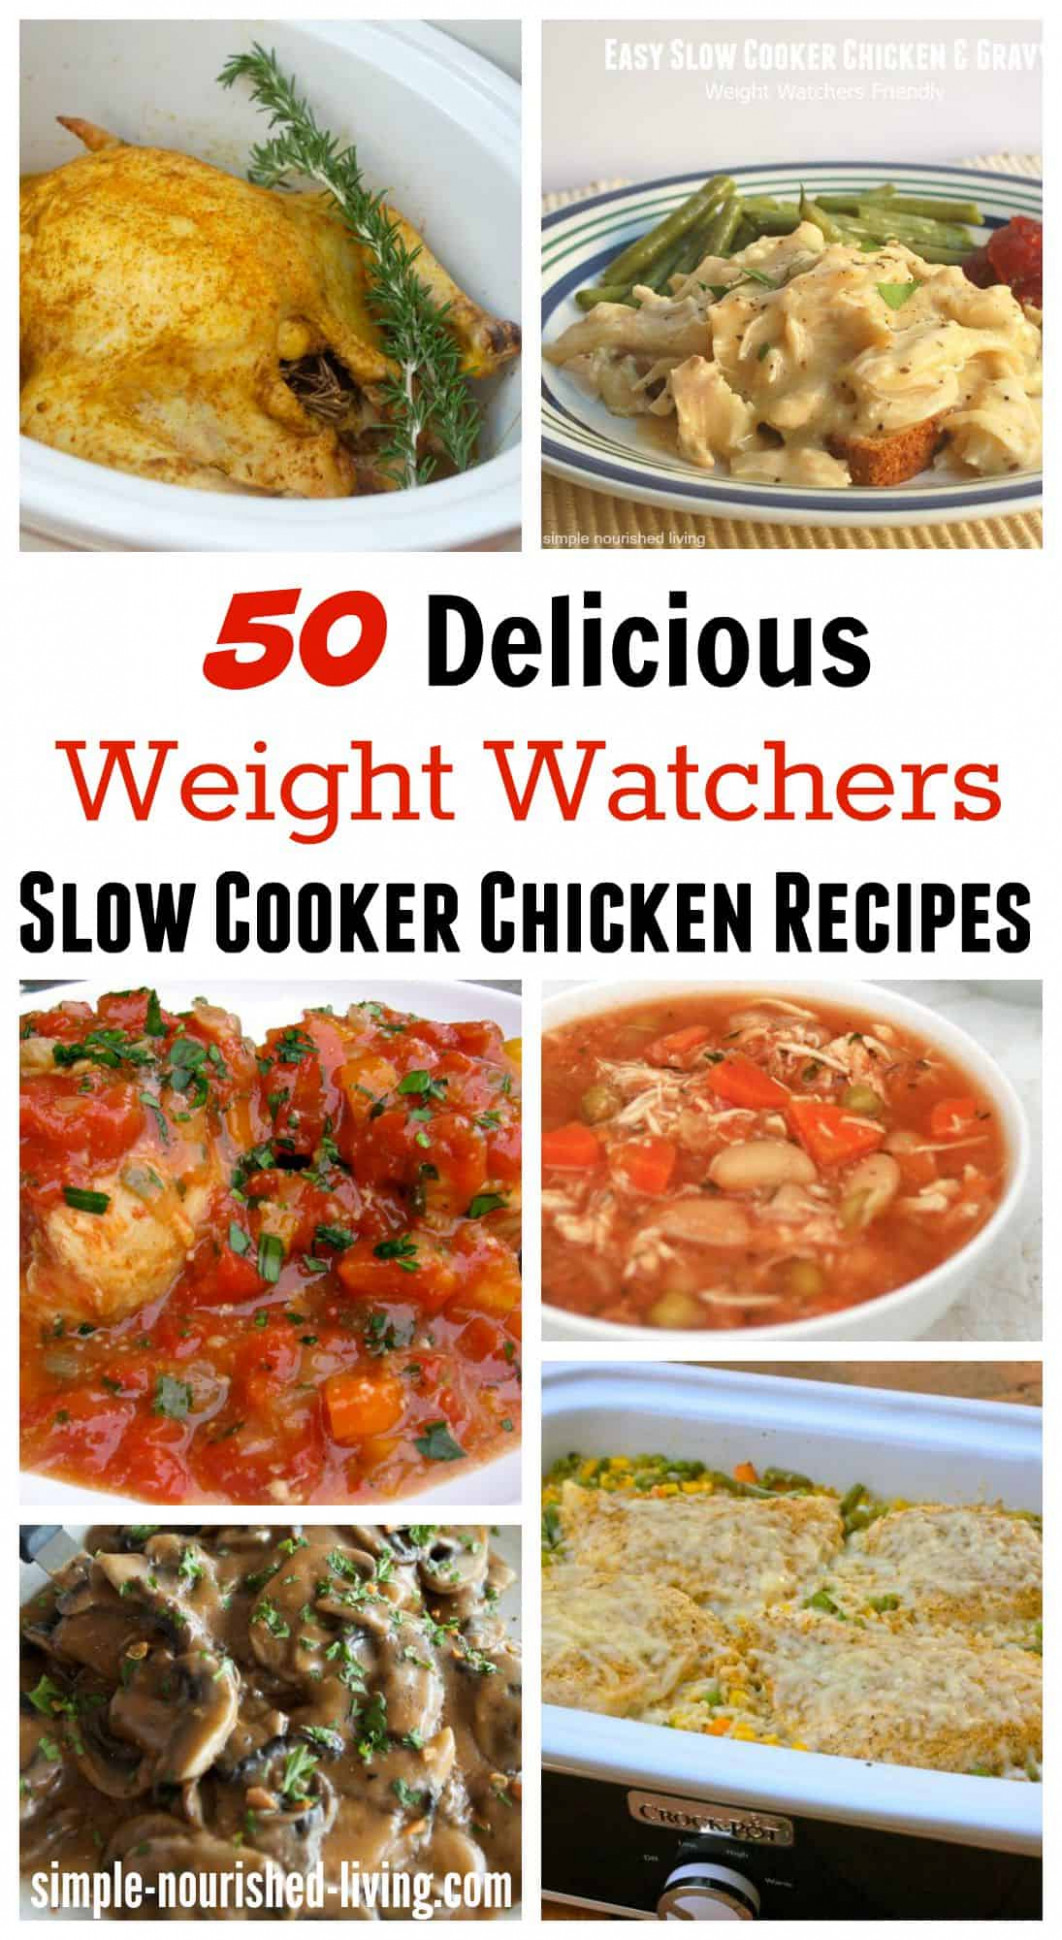 Healthy Slow Cooker Chicken Recipes For Weight Watchers - Healthy Slow Cooker Recipes